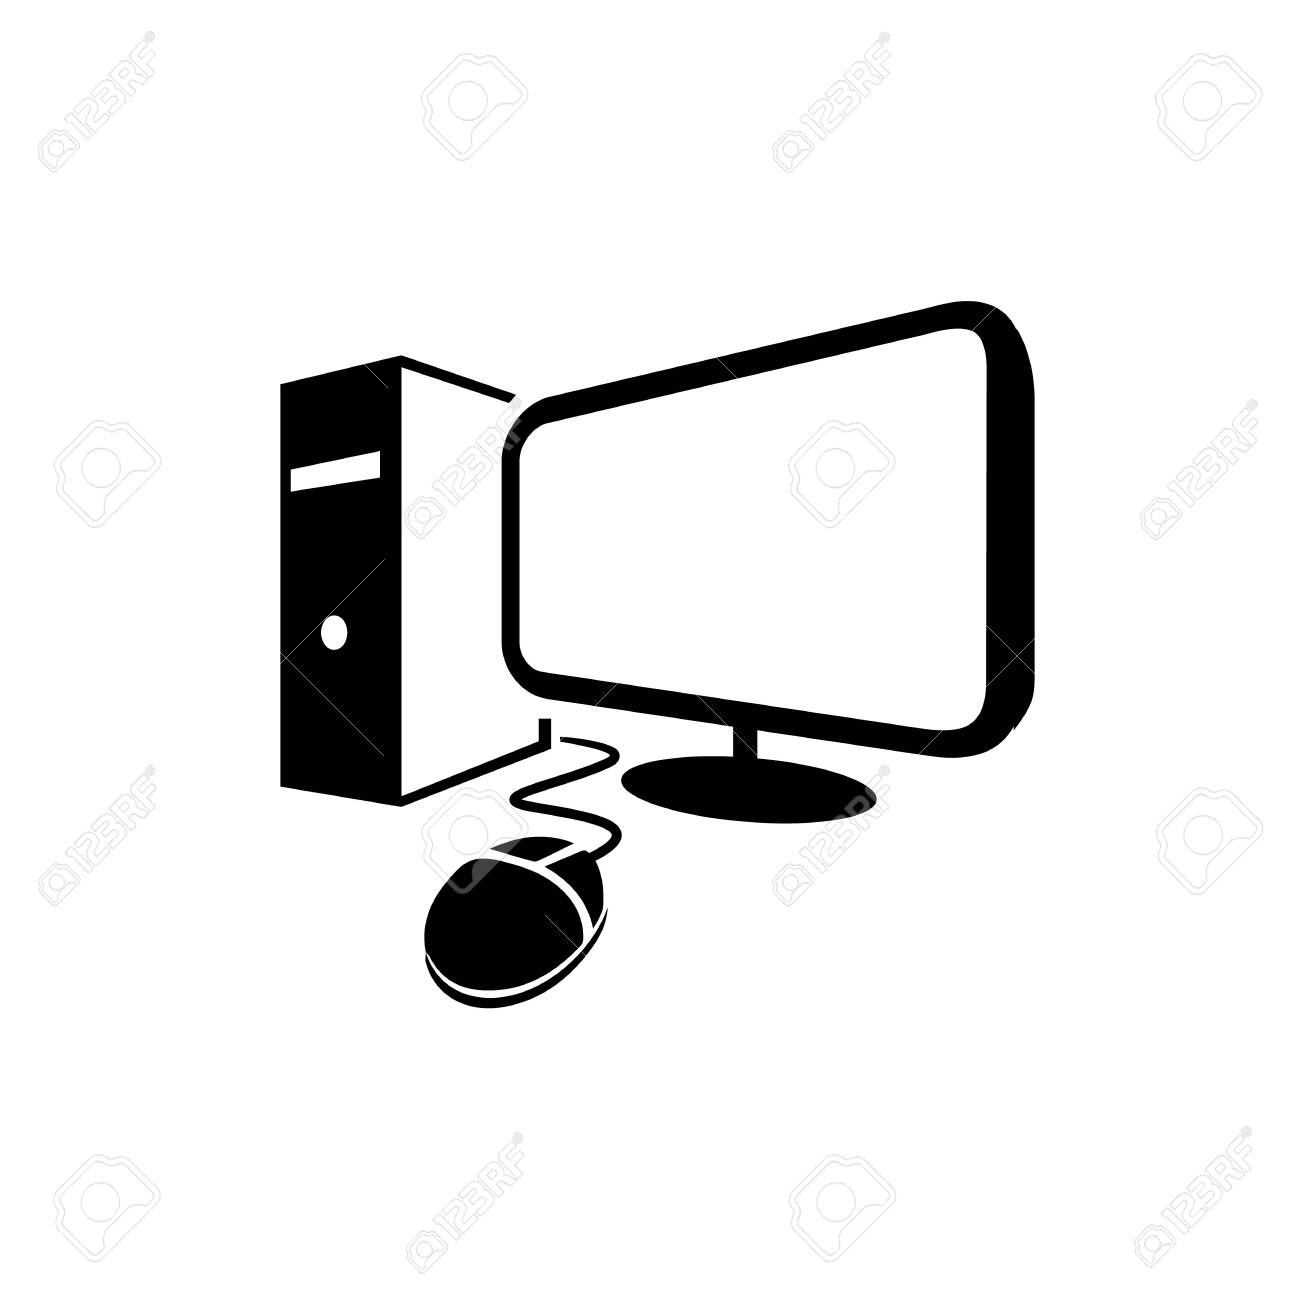 Simple Black Color Desktop Computer Vector Logo Icon Illustrations Royalty Free Cliparts Vectors And Stock Illustration Image 142987163